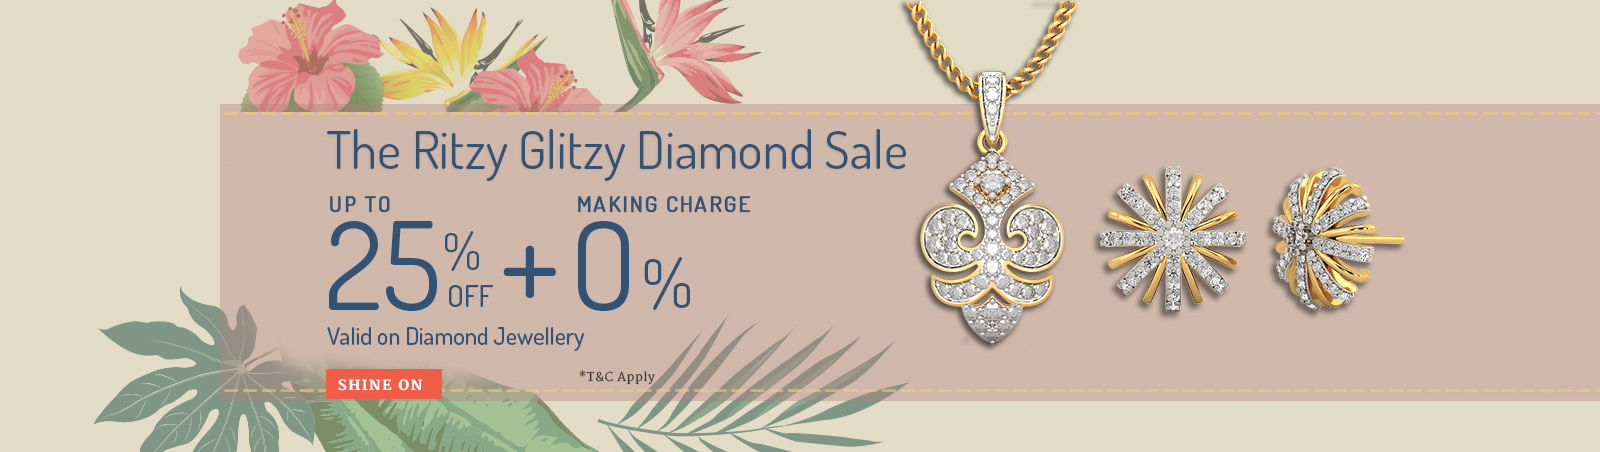 The Ritzy Glitzy Diamond Sale